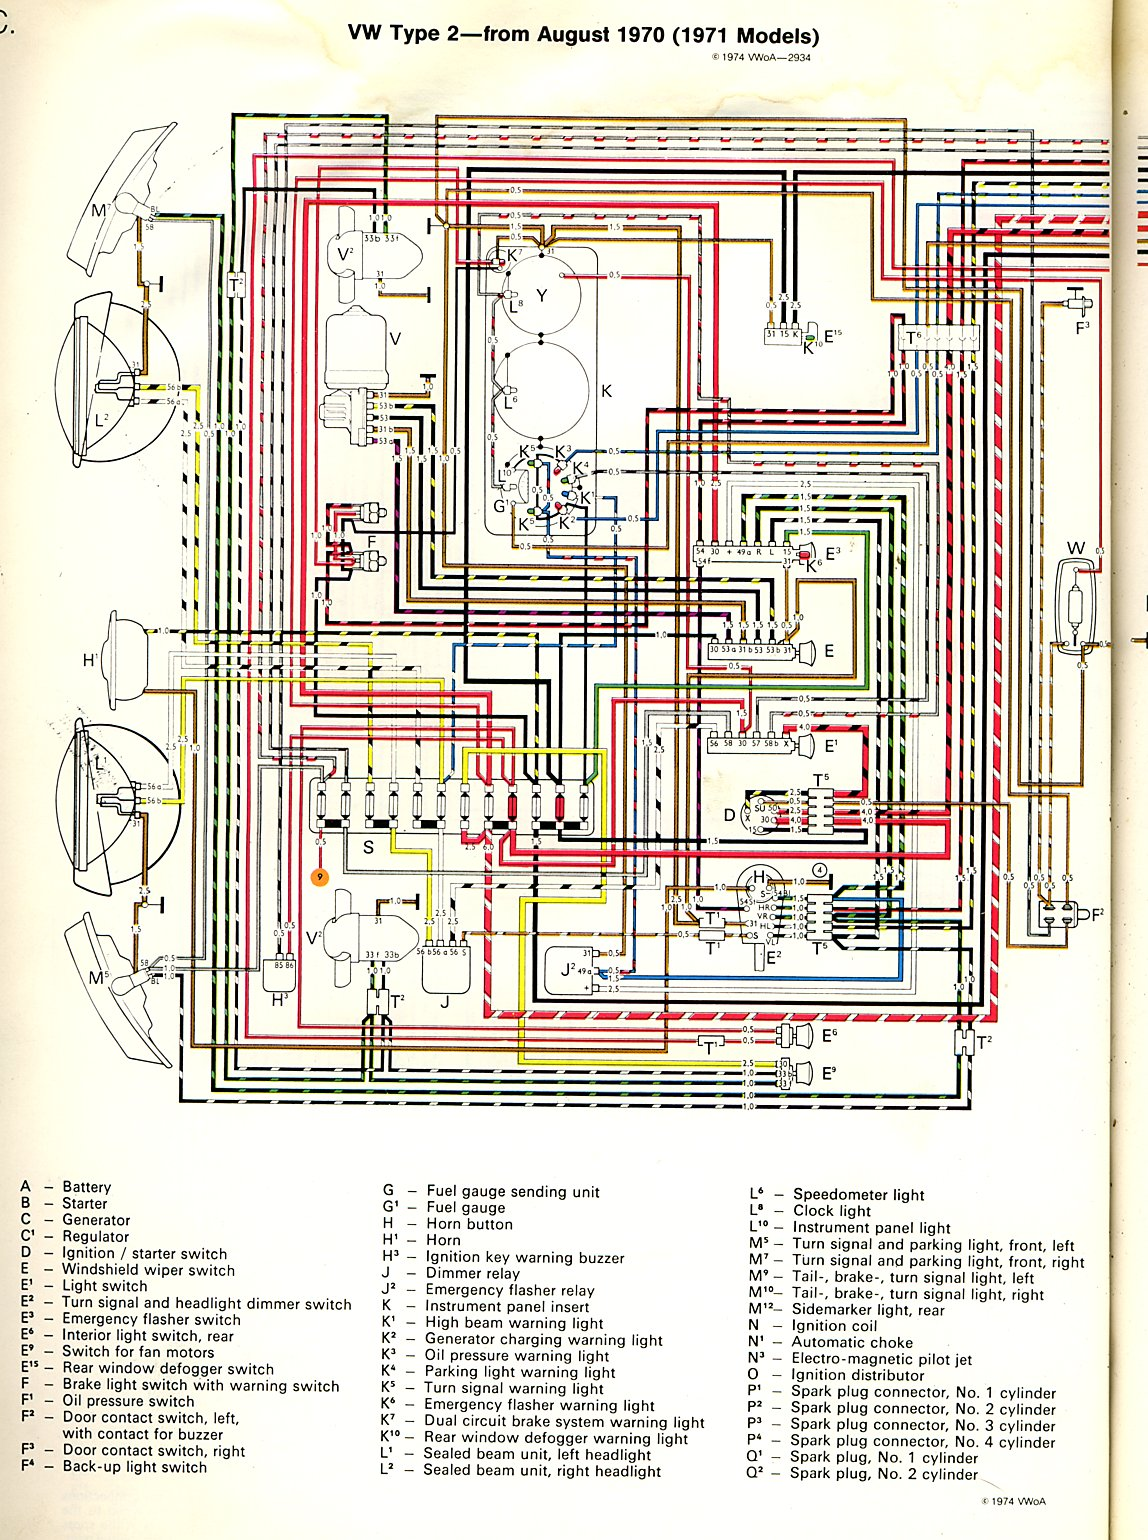 baybus_71a thesamba com type 2 wiring diagrams 1978 vw bus fuse box diagram at aneh.co